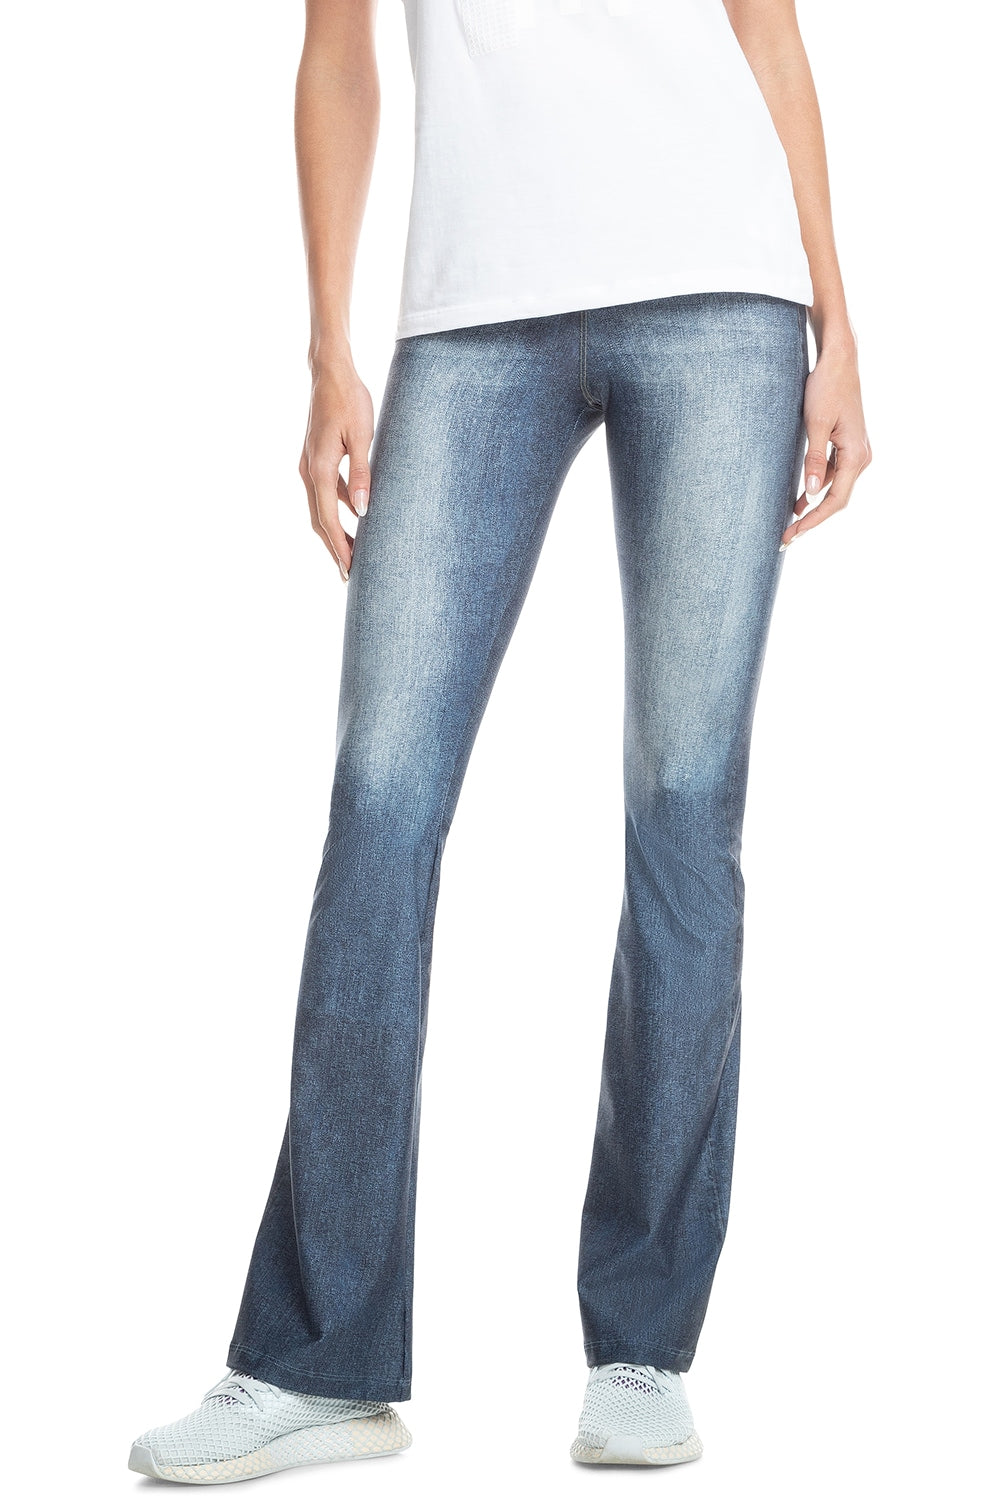 Rush Denim Flare 1